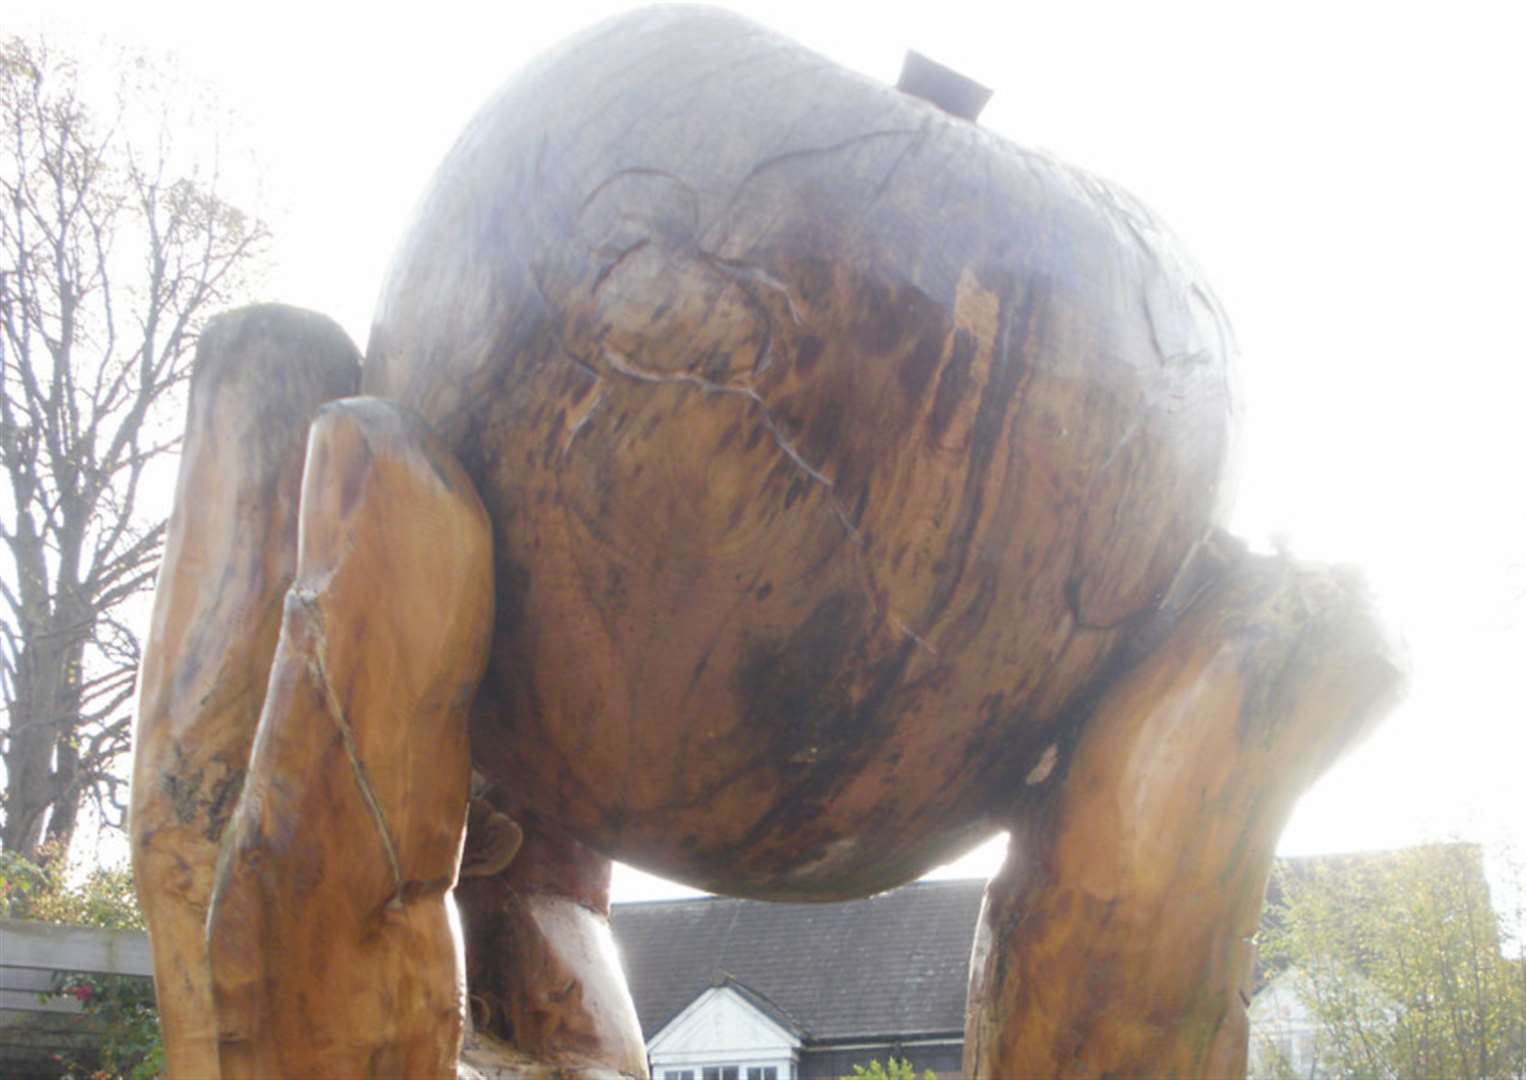 Iconic Grantham apple sculpture will soon return to Wyndham Park